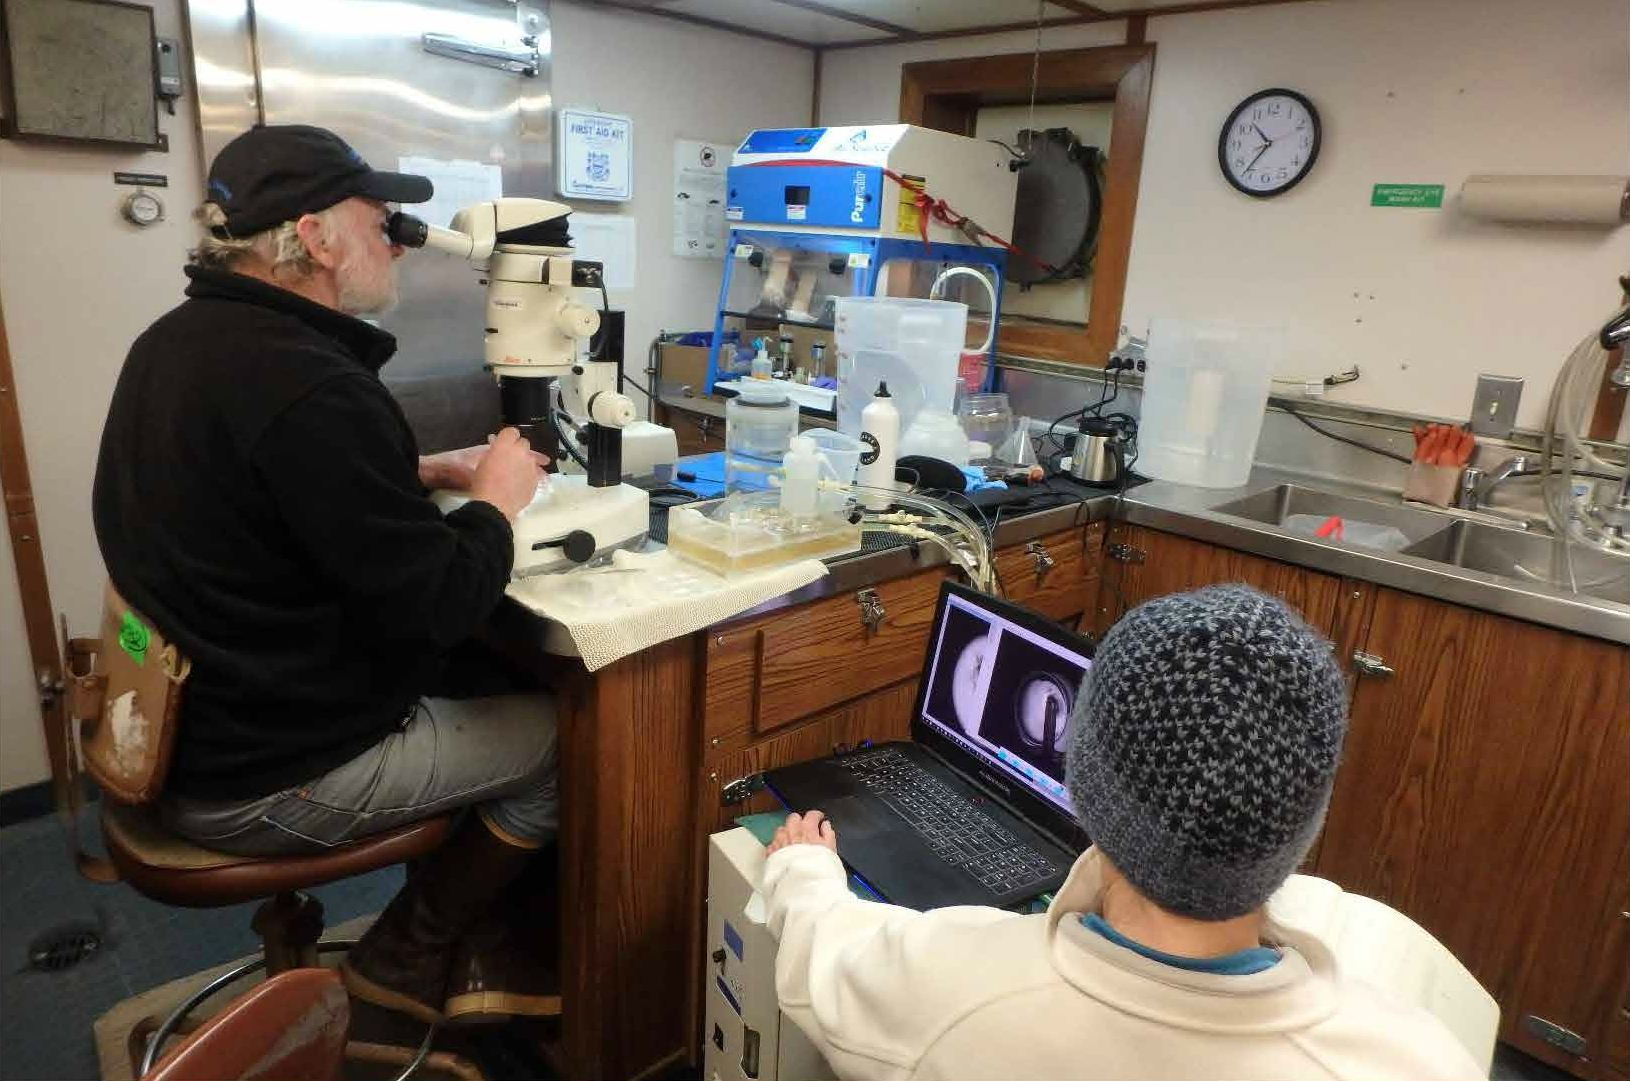 A scientist sits at a microscope connected to a computer; another scientist manages a laptop displaying the microscope's view